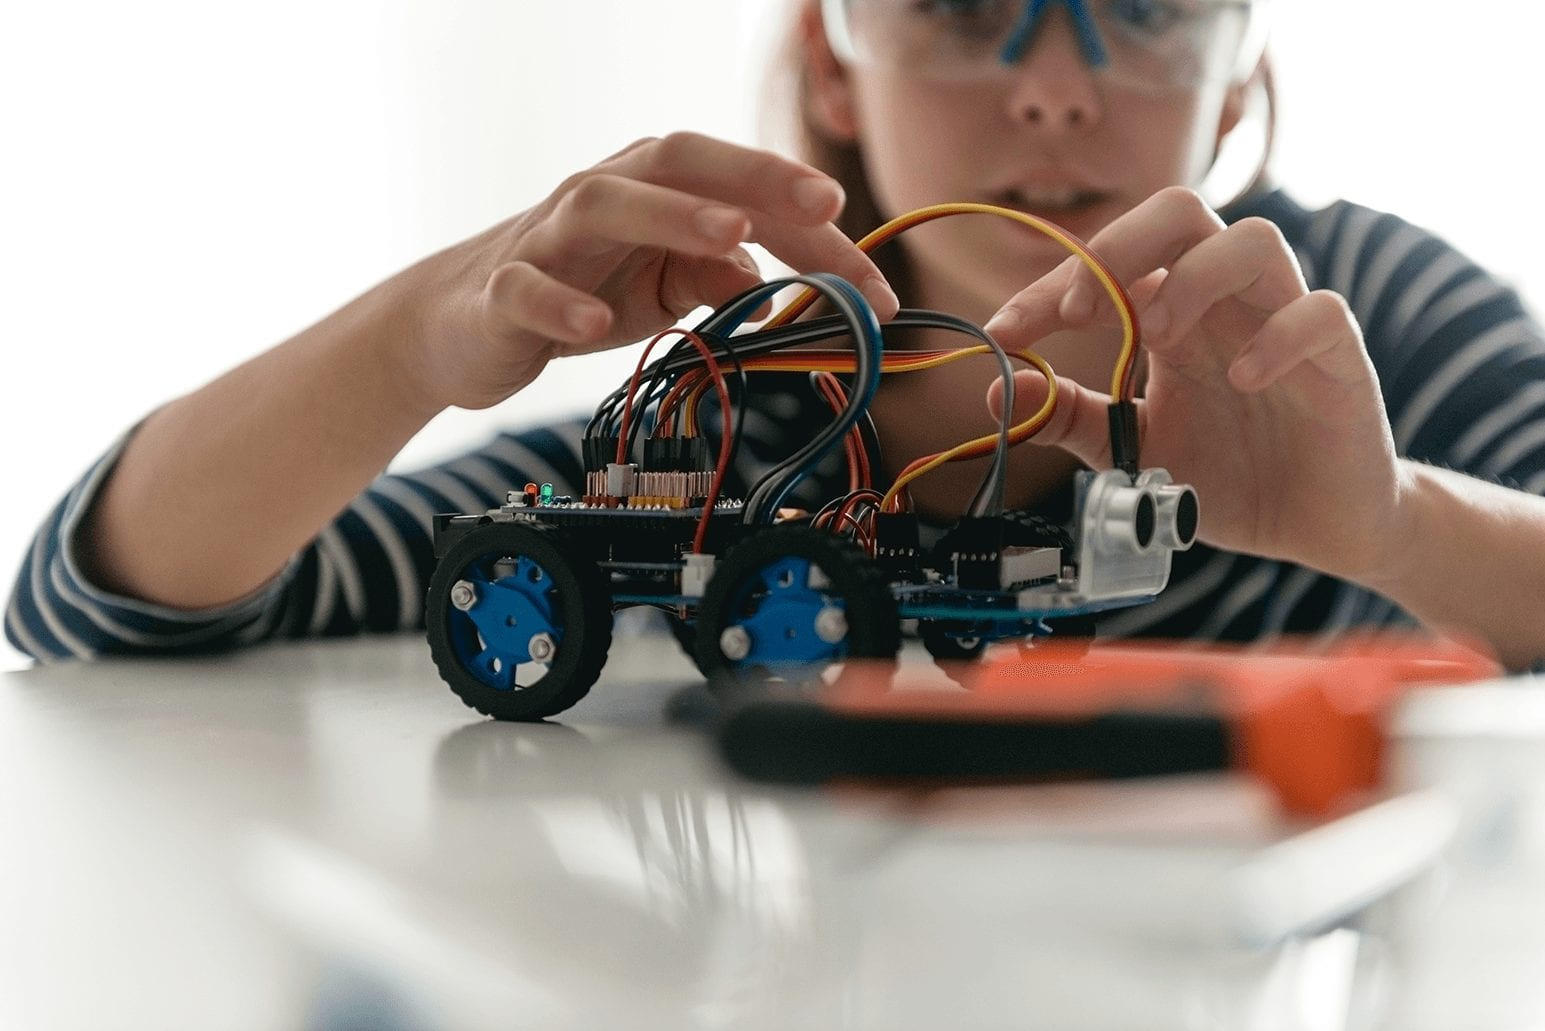 5 Stem Activities That Impress On College Applications